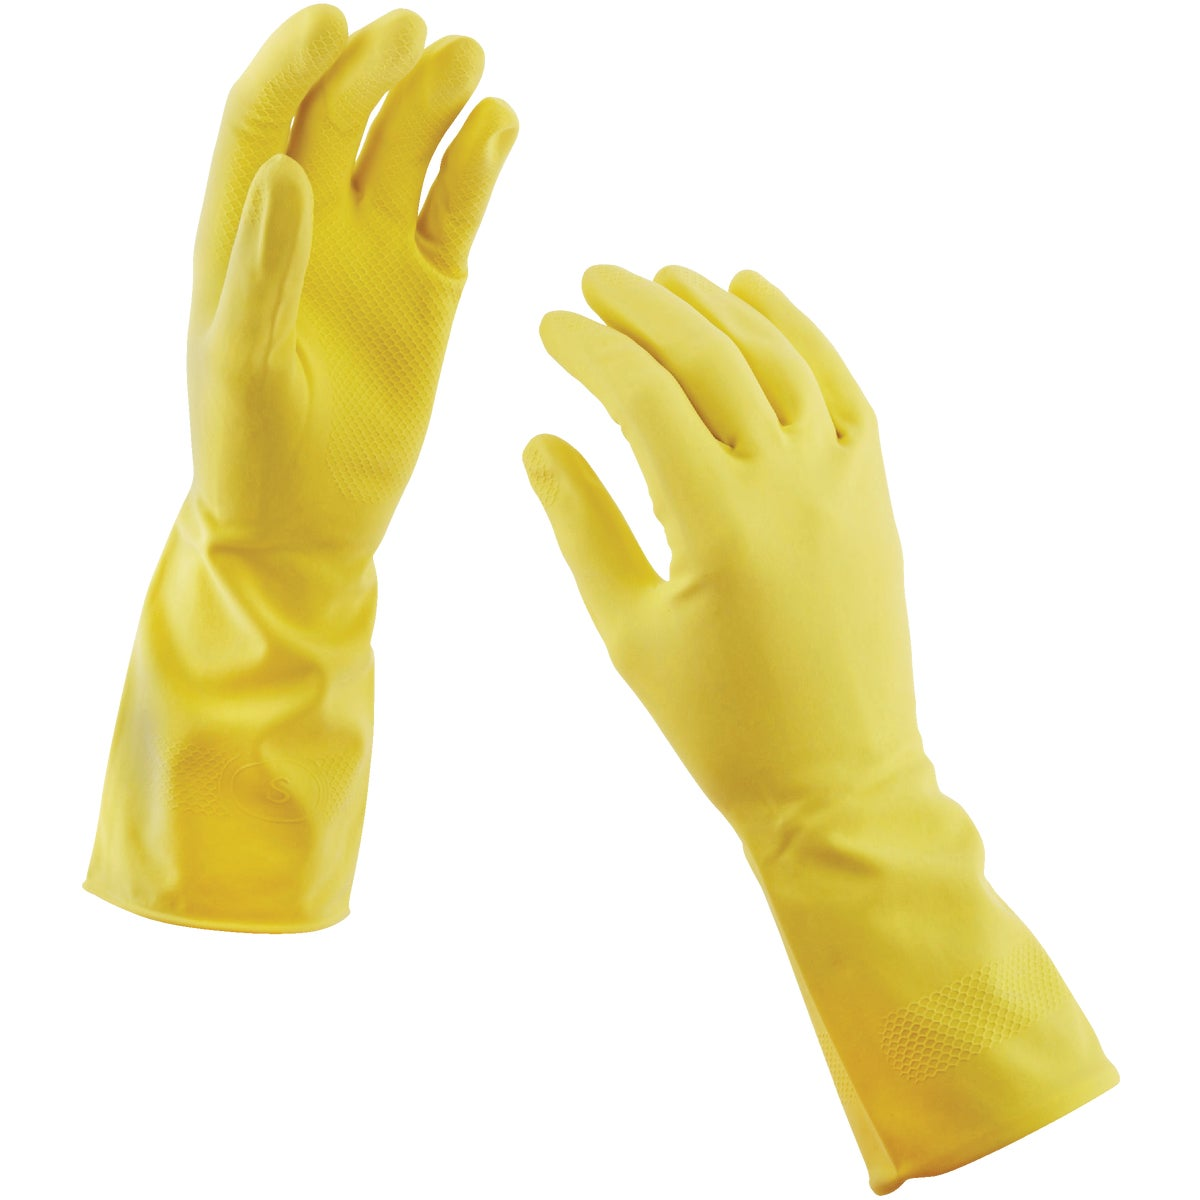 XL 2PK LATEX GLOVE